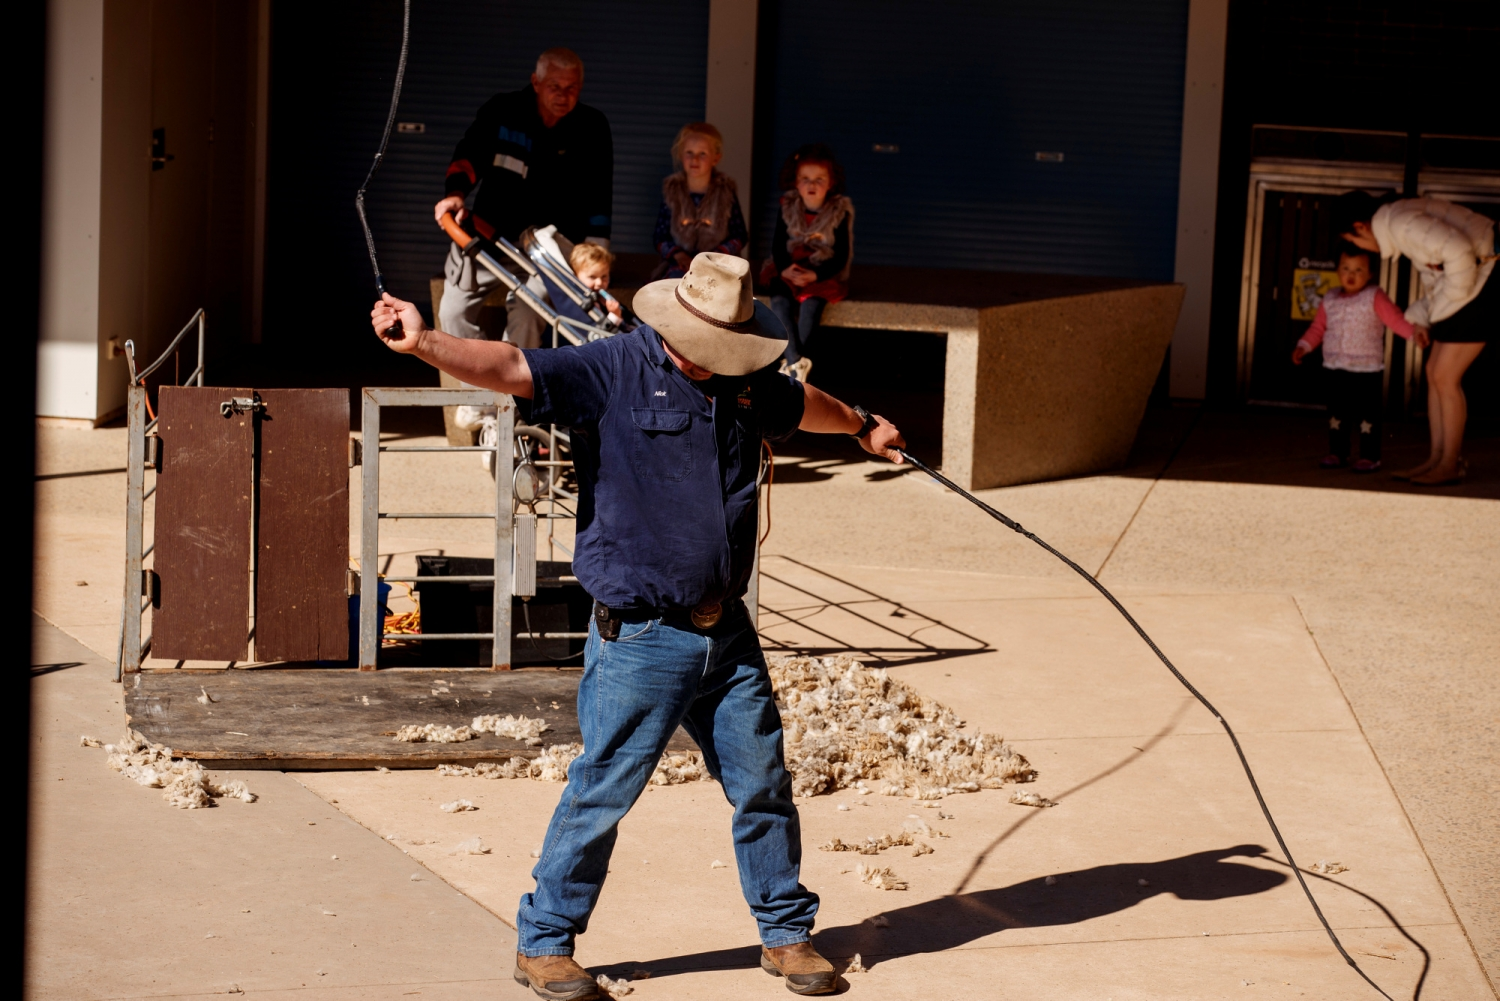 Man demonstrating stock whips using two at once, with lookers on.